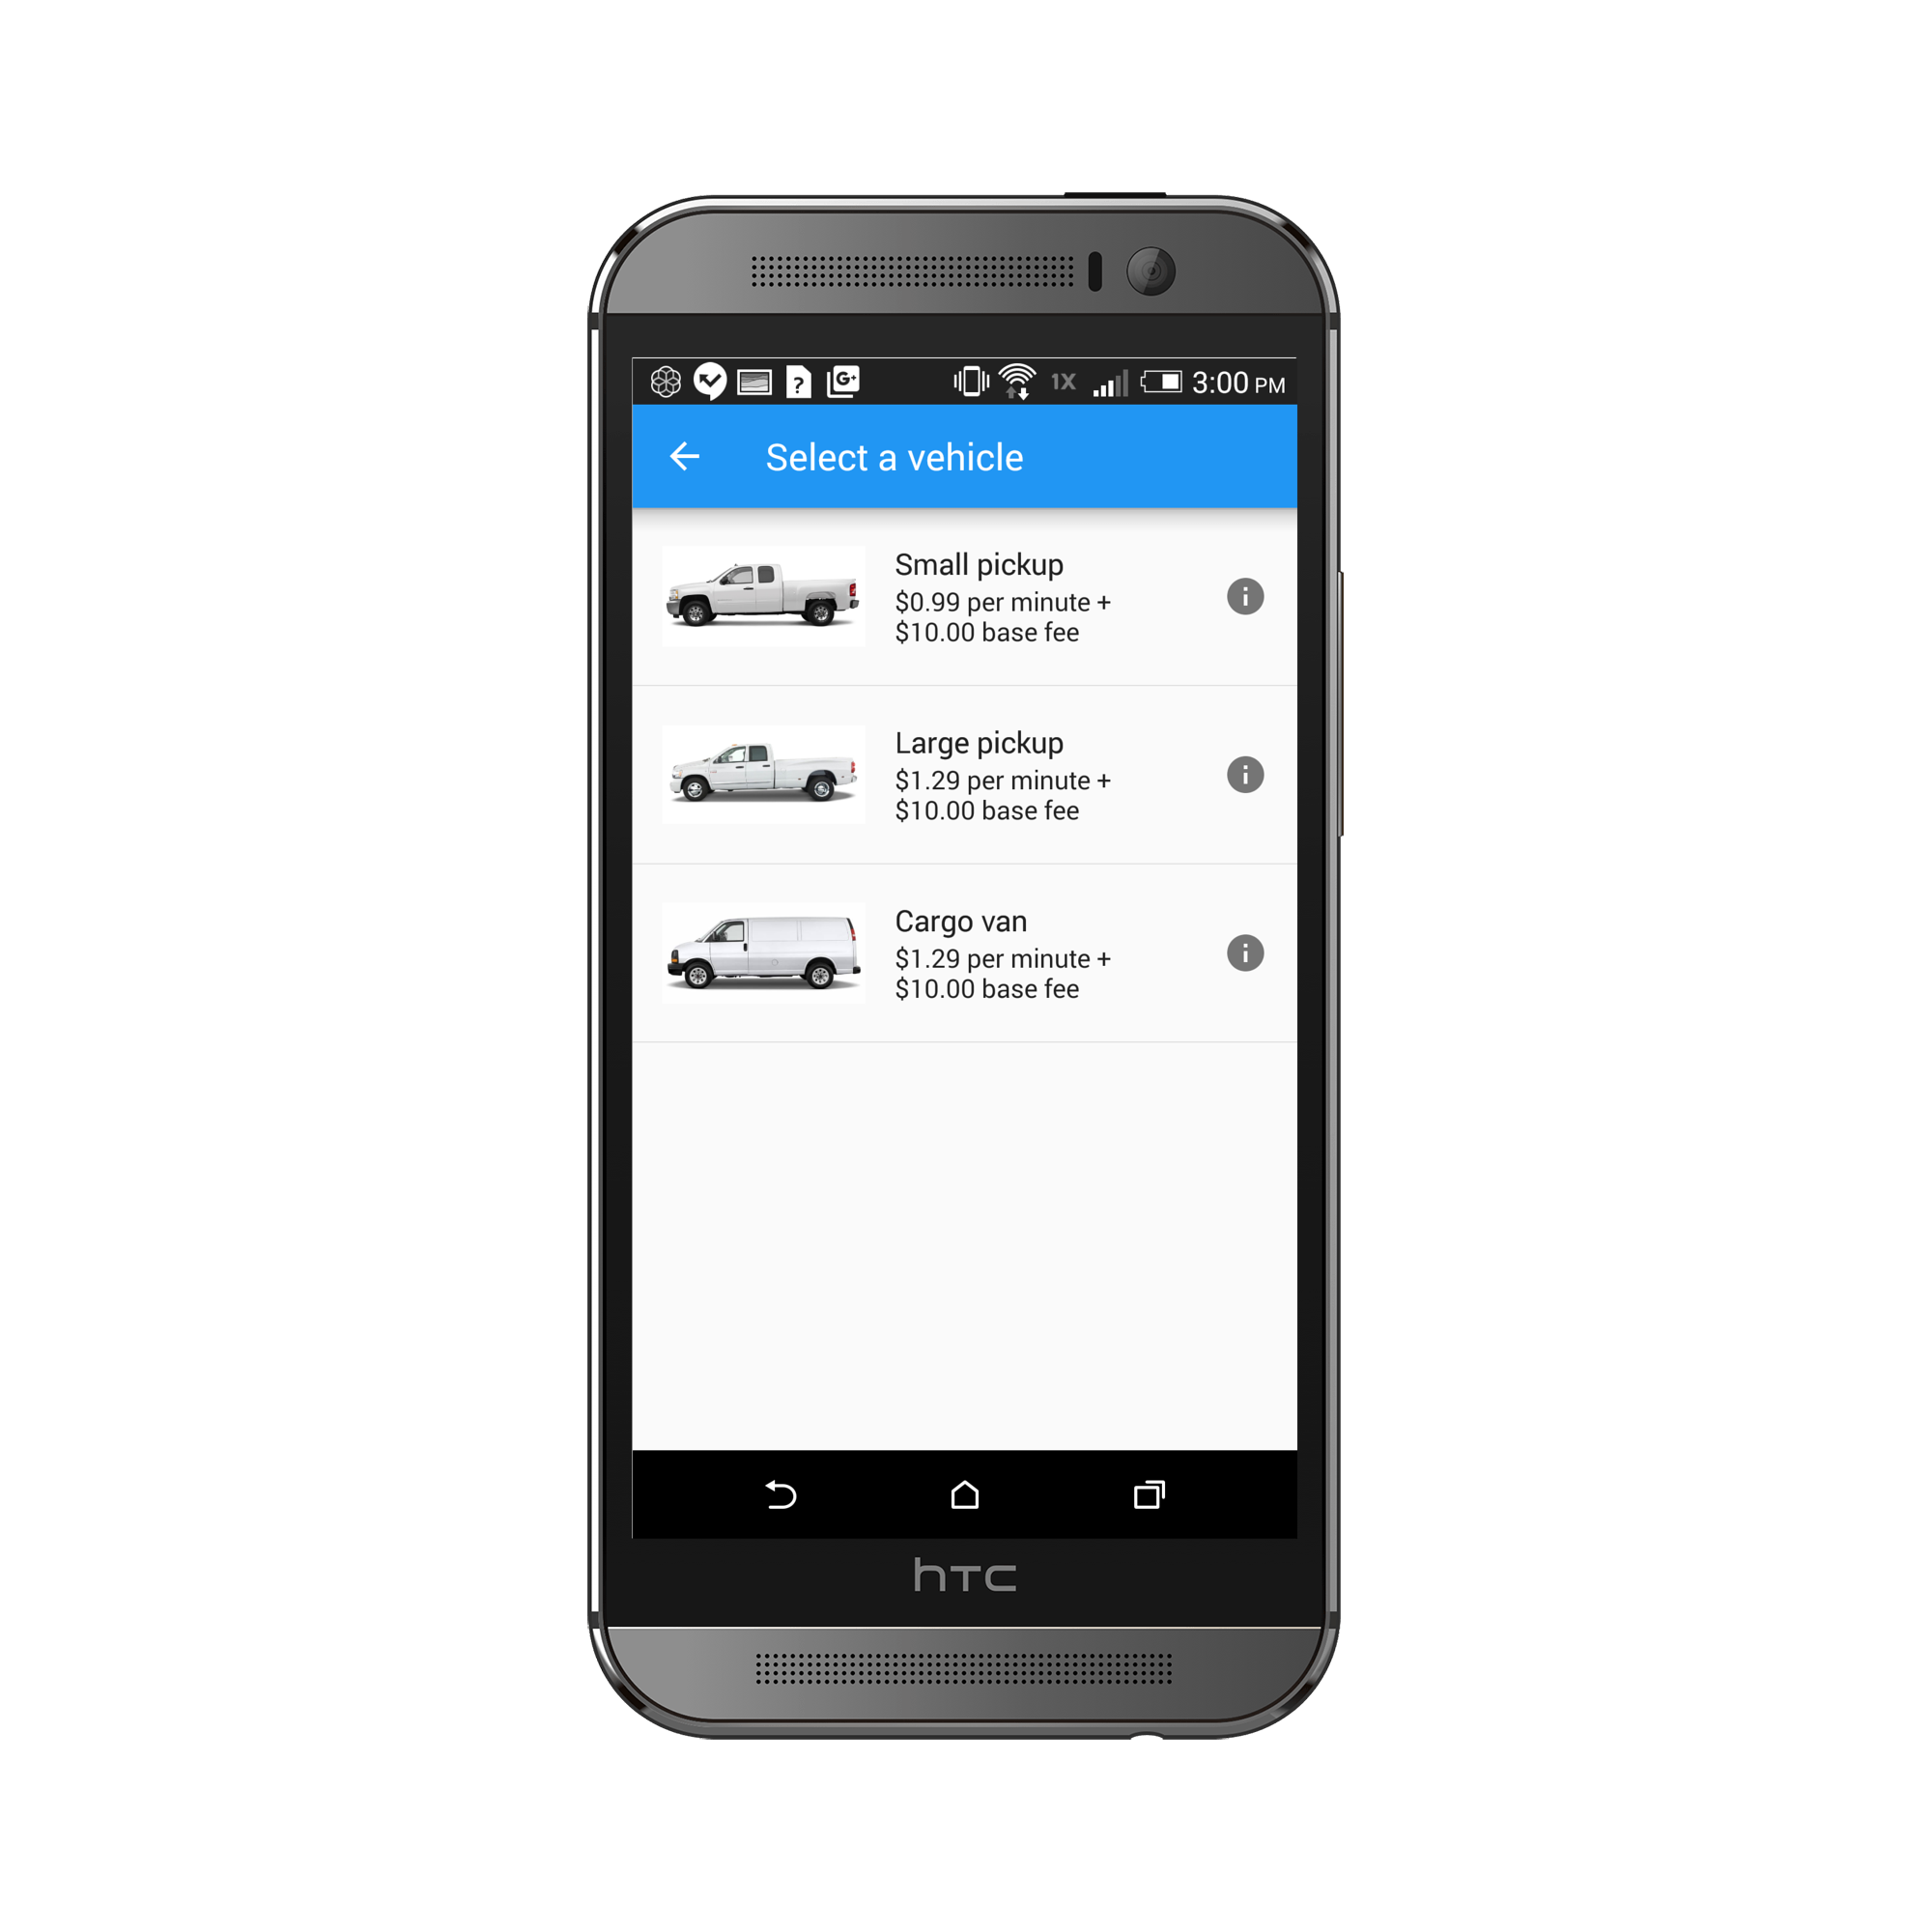 Android Vehicle Selection